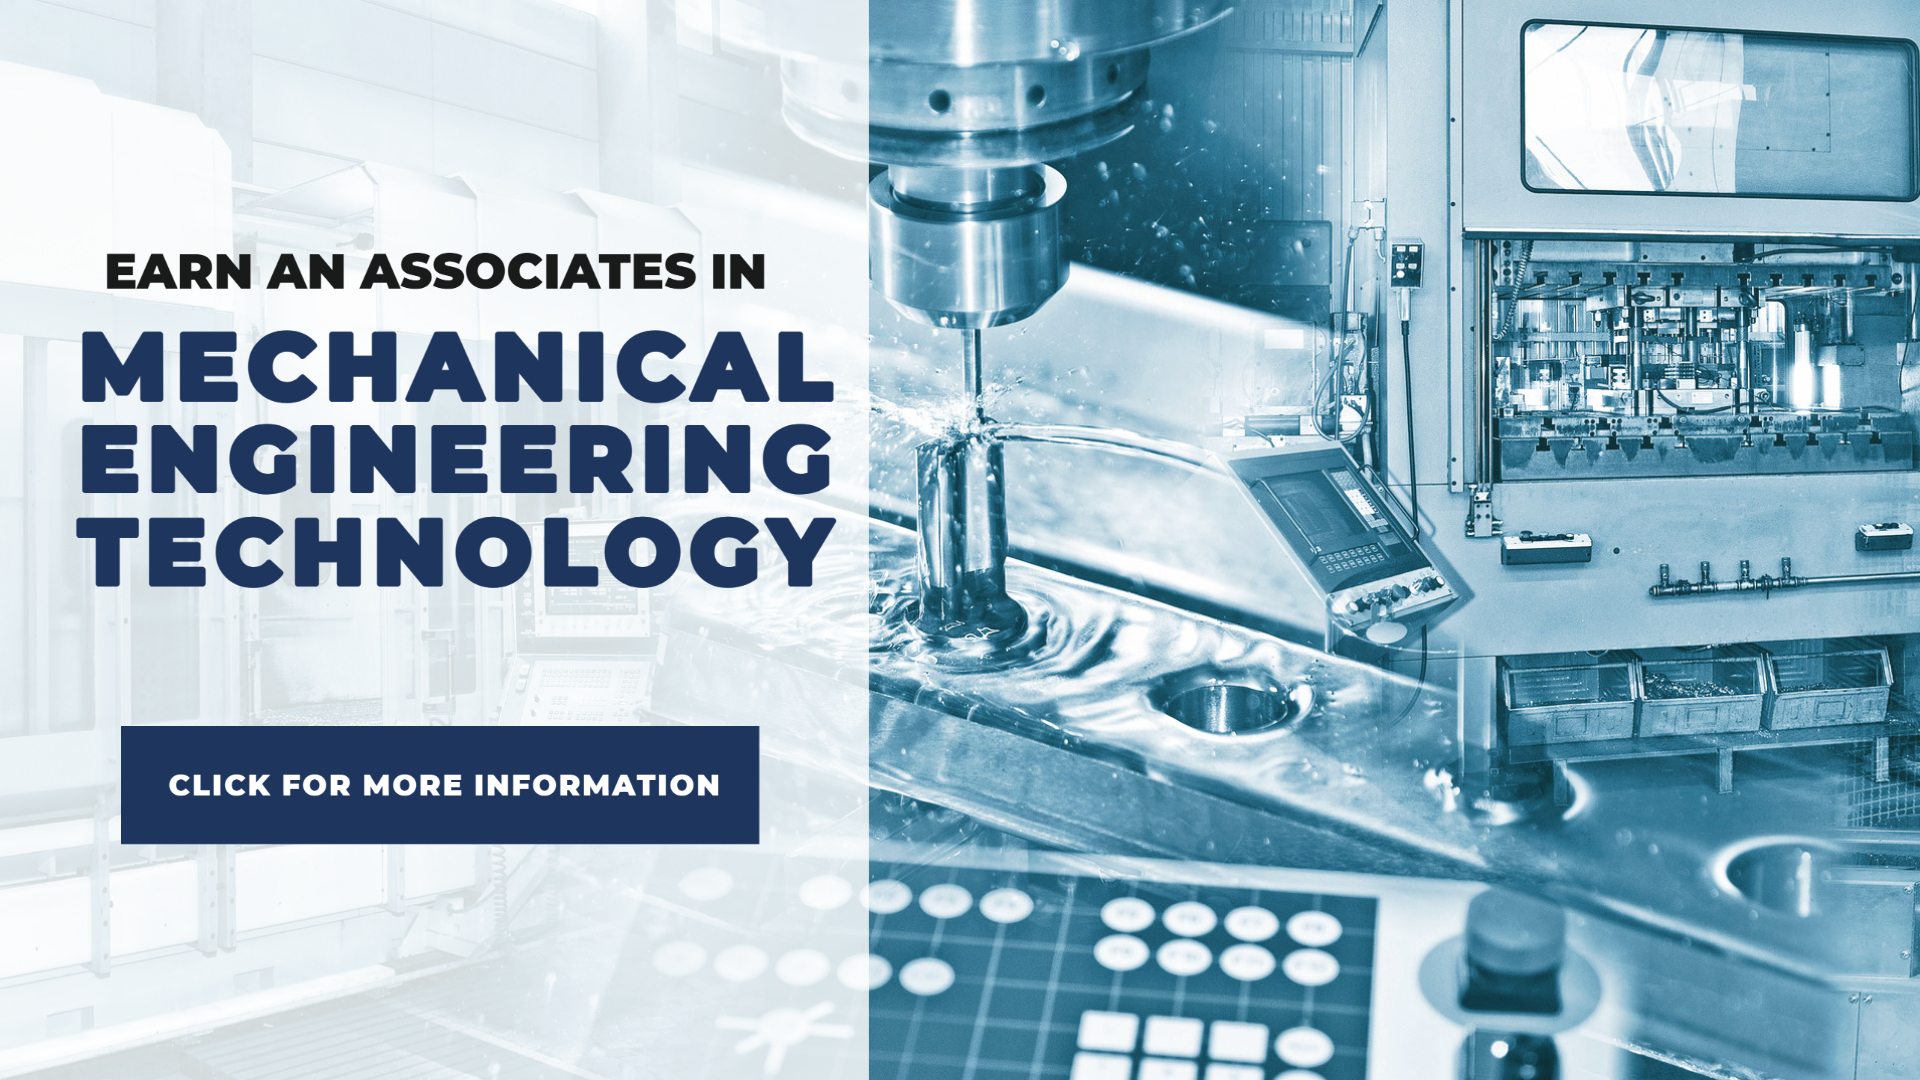 Mechanical Engineering Technology Program